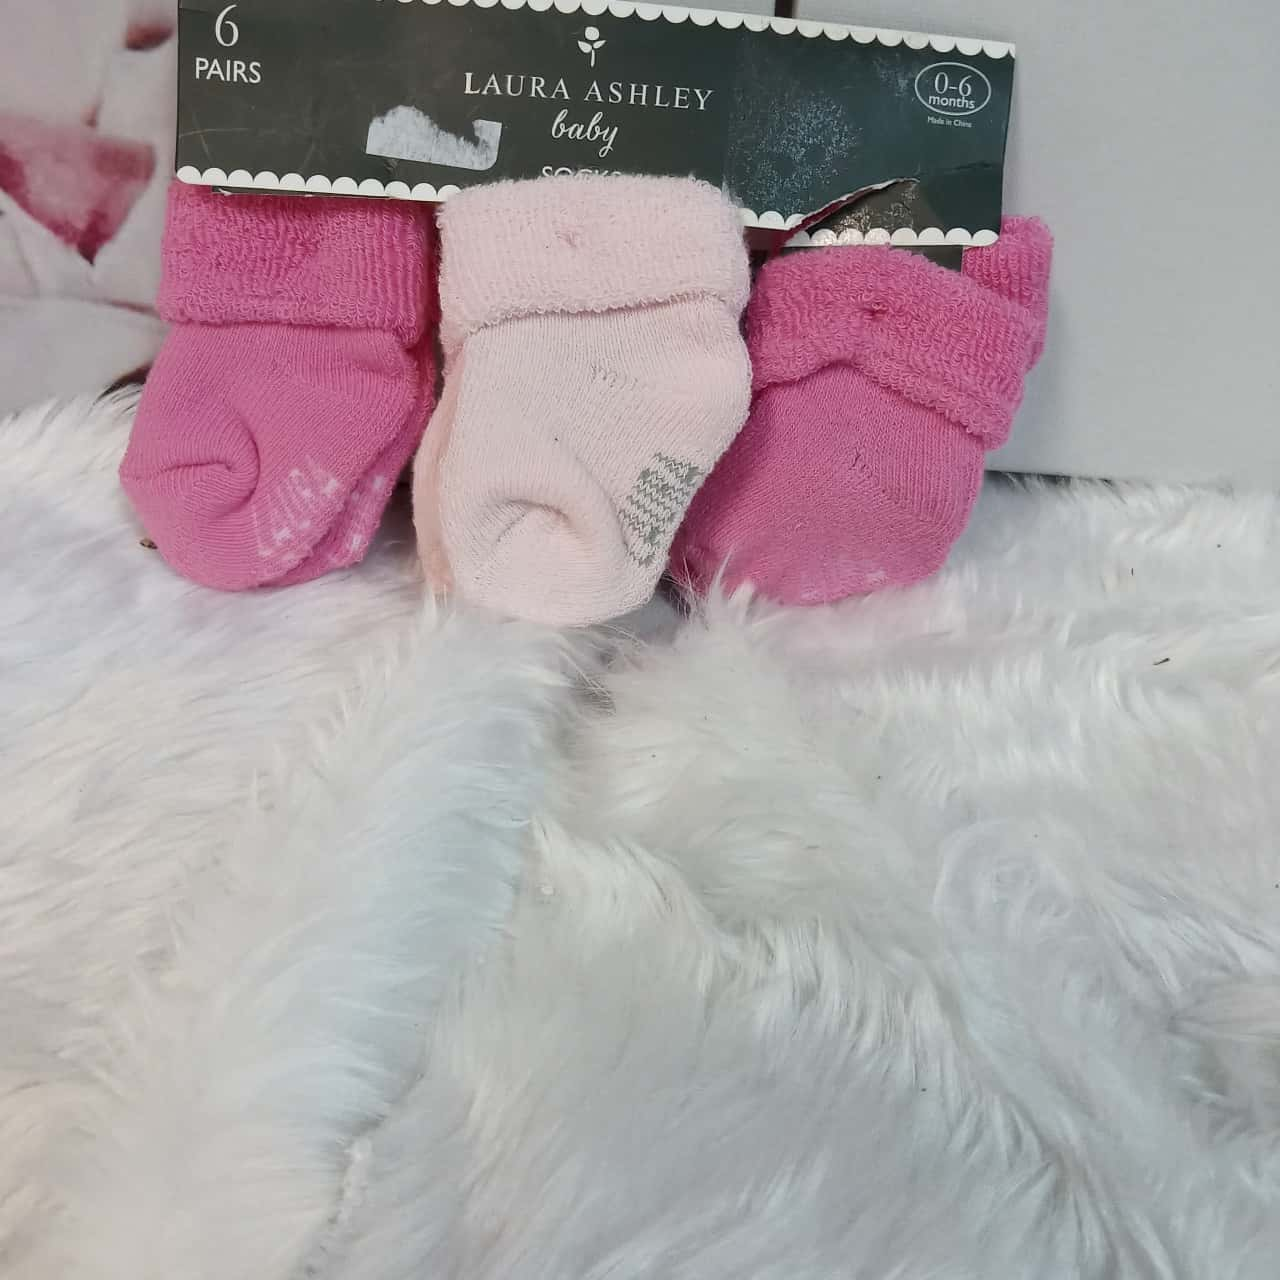 Laura Ashley Baby Socks Pink 0-6 months 6 pairs